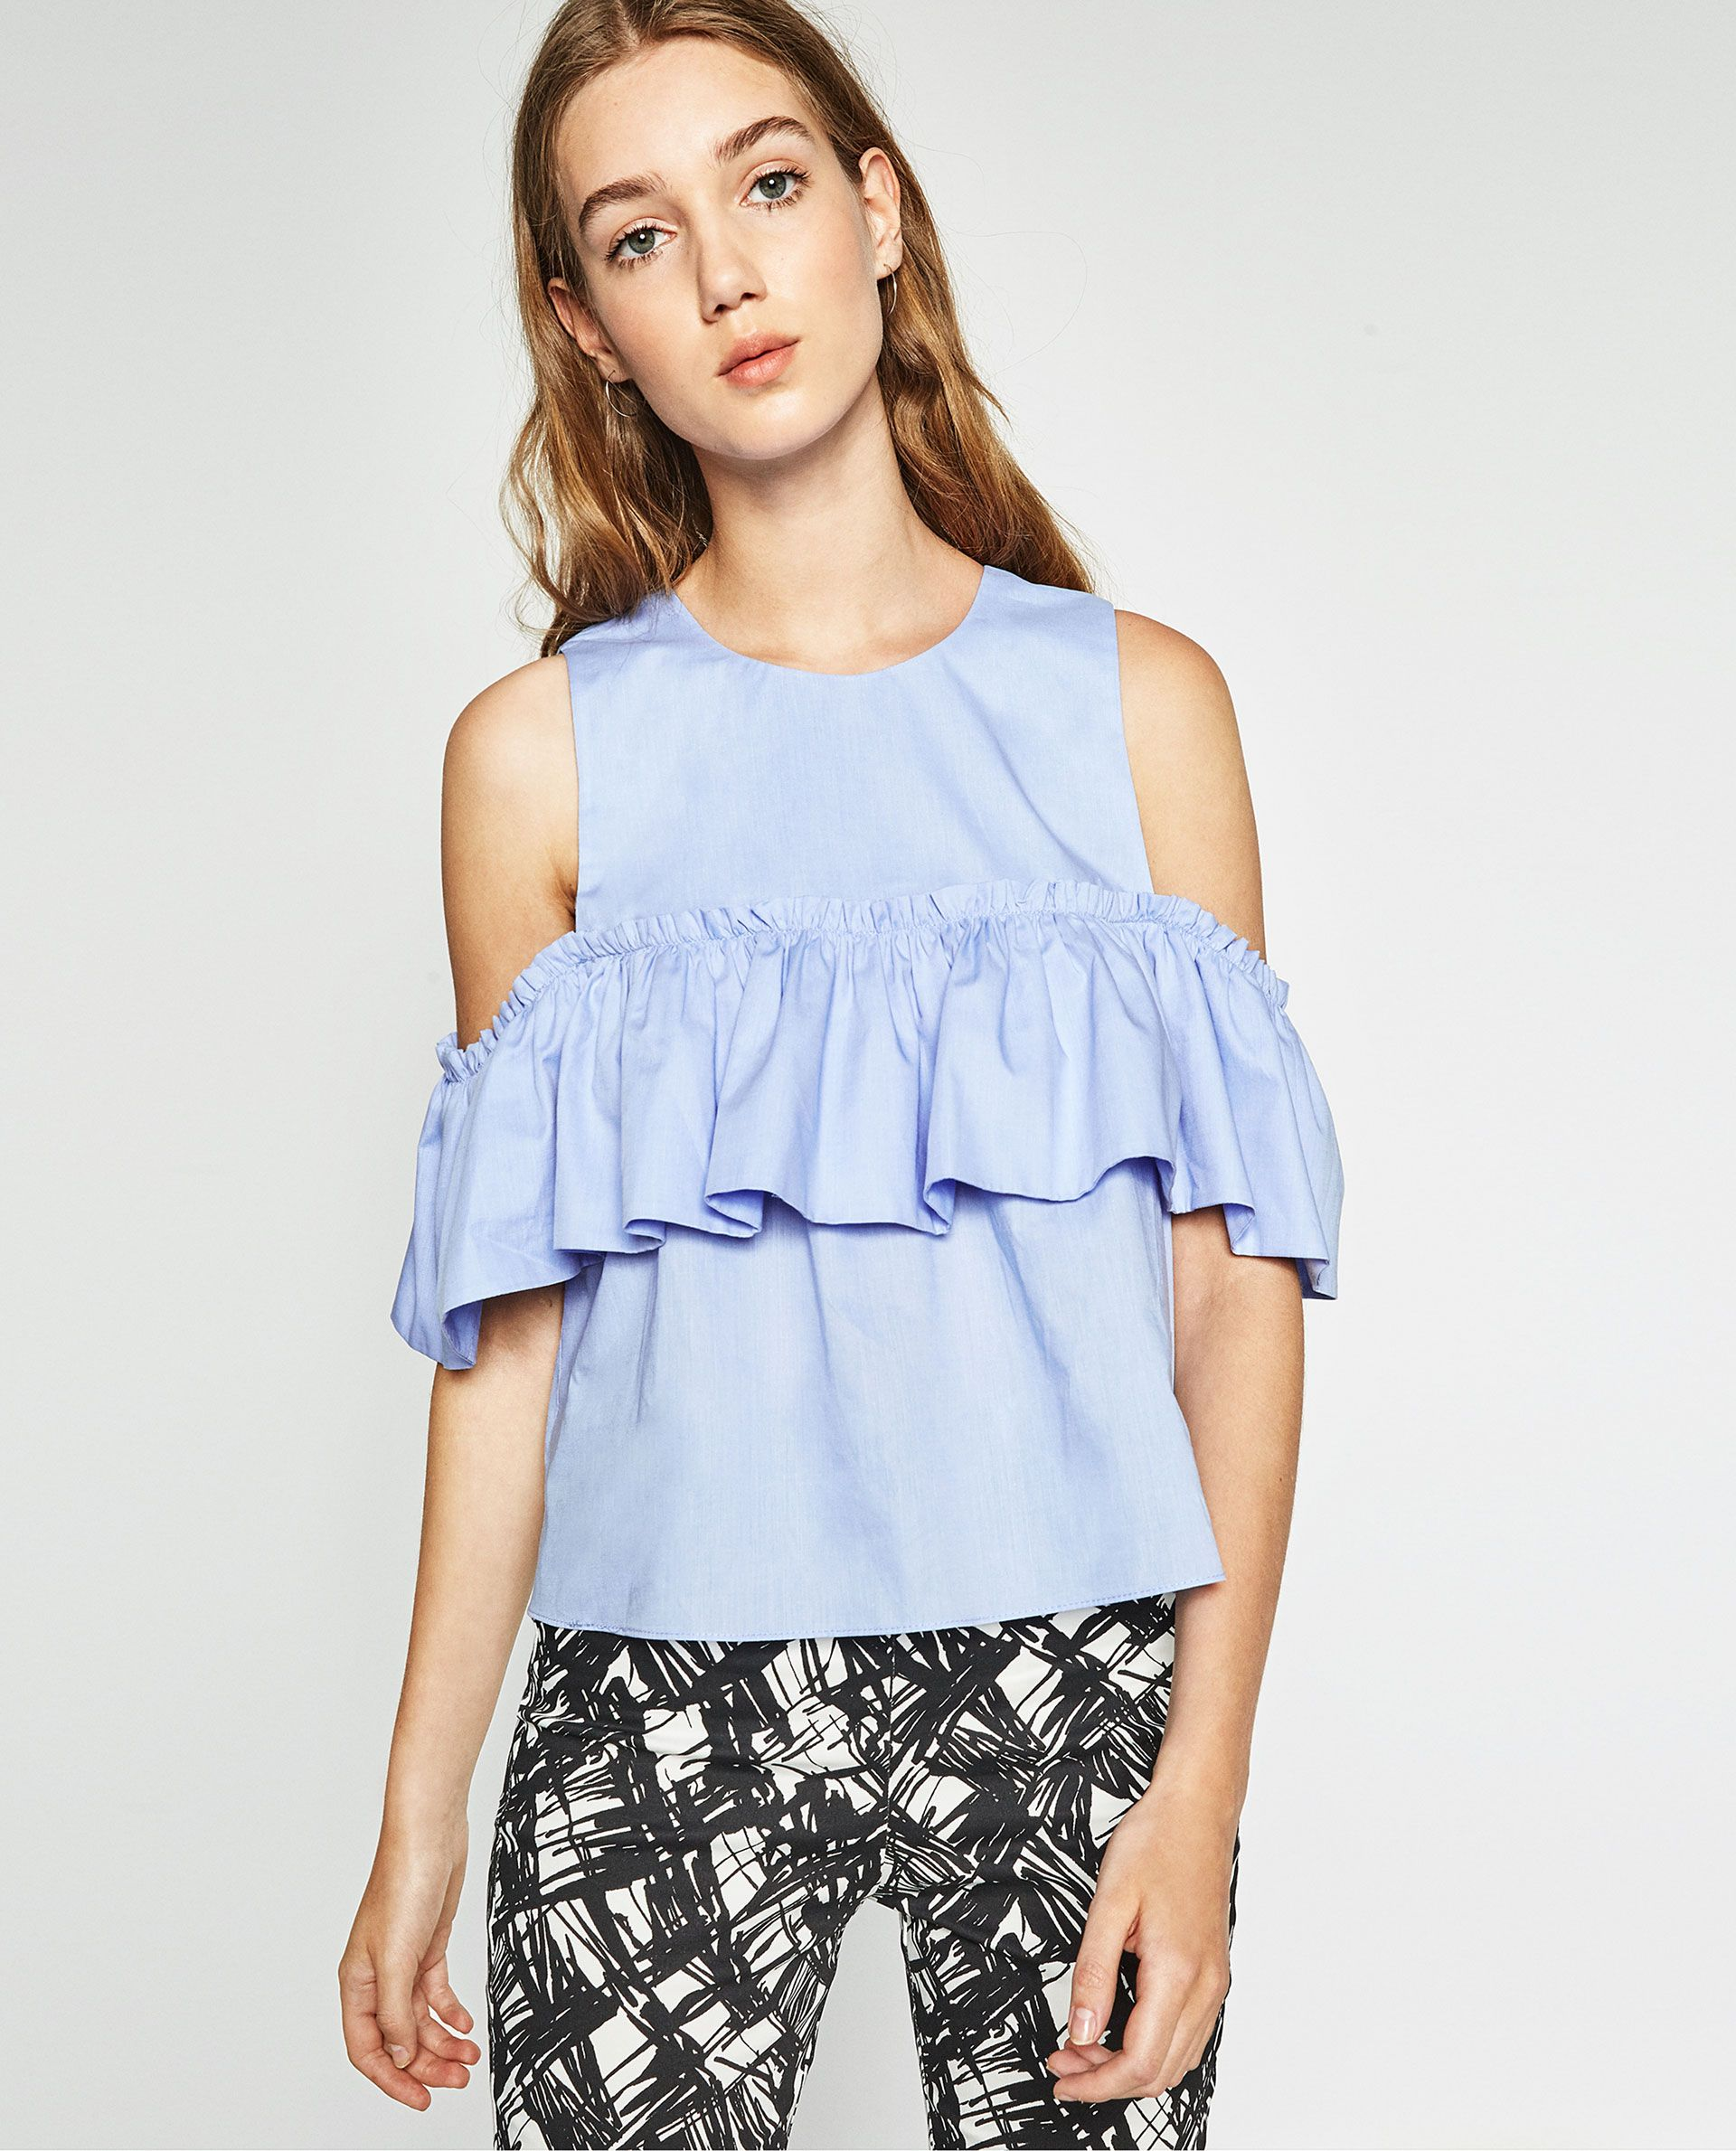 Summer Clothes 2016 | 40 pieces to add to your ZARA cart rn | Cold Shoulder  Top with ruffle detail, $29.90